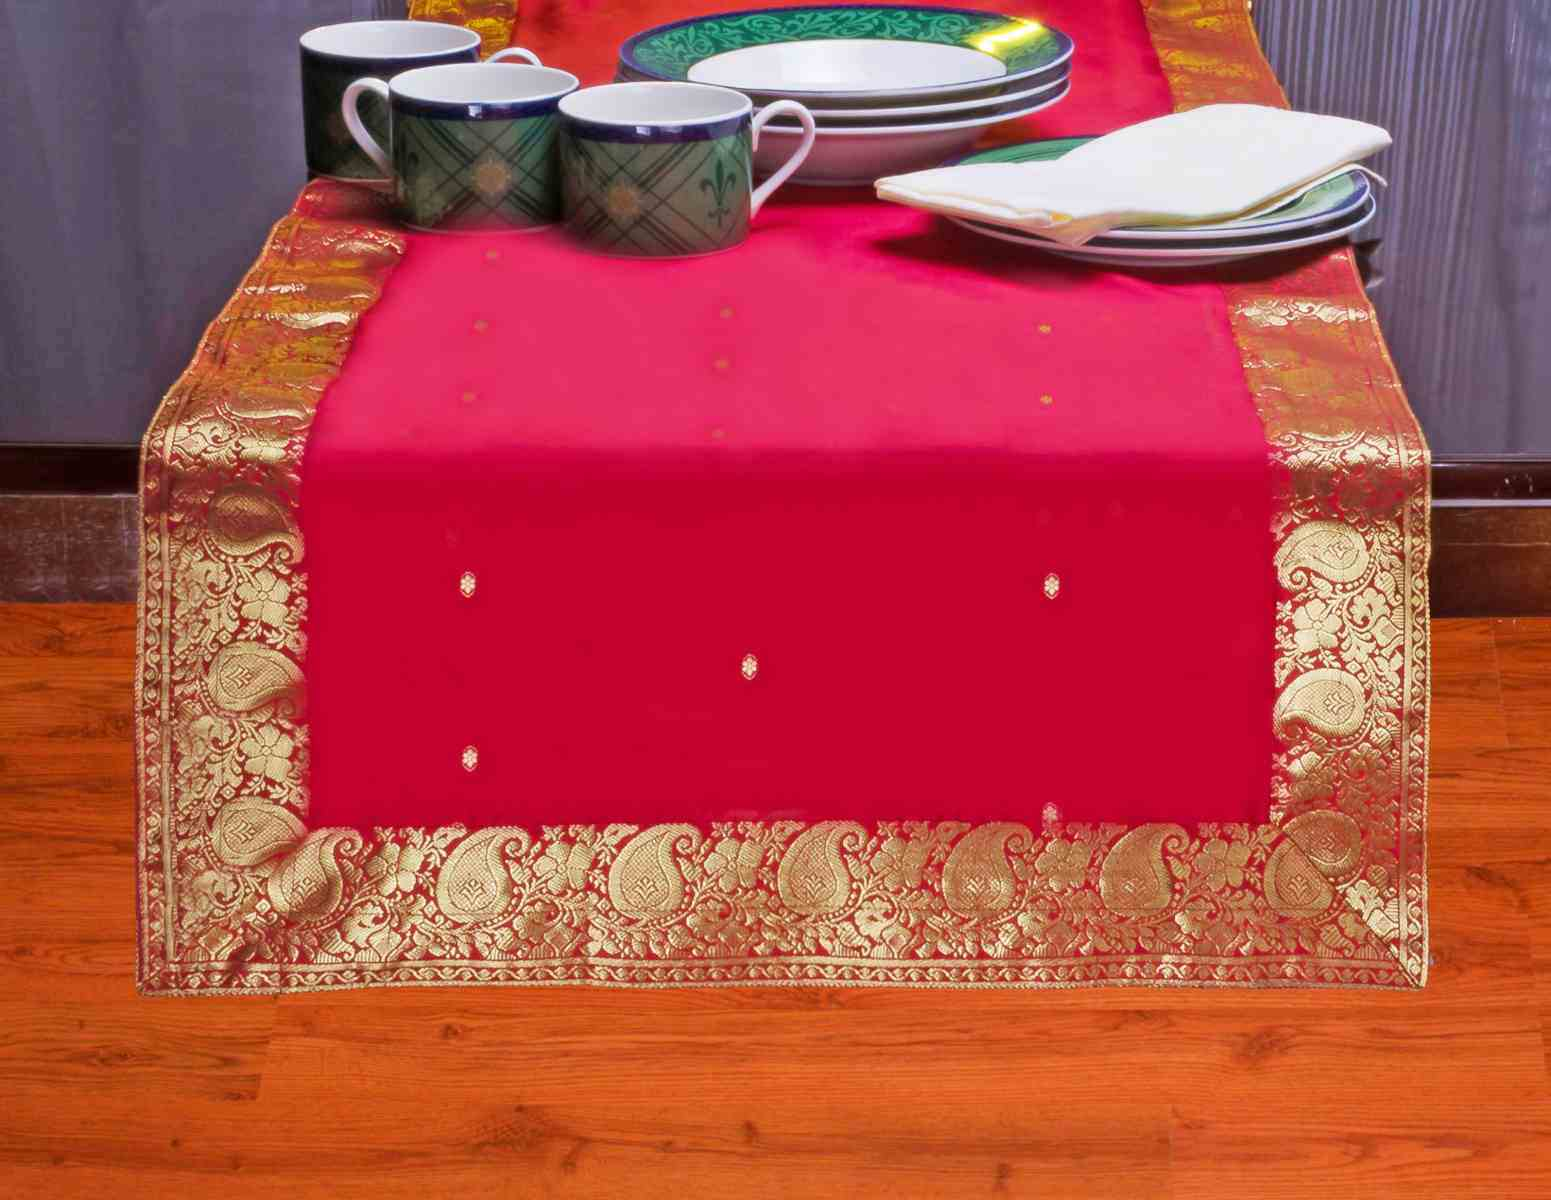 Fire Brick-Hand Crafted Table Runner (India) - 16 X 108 Inches